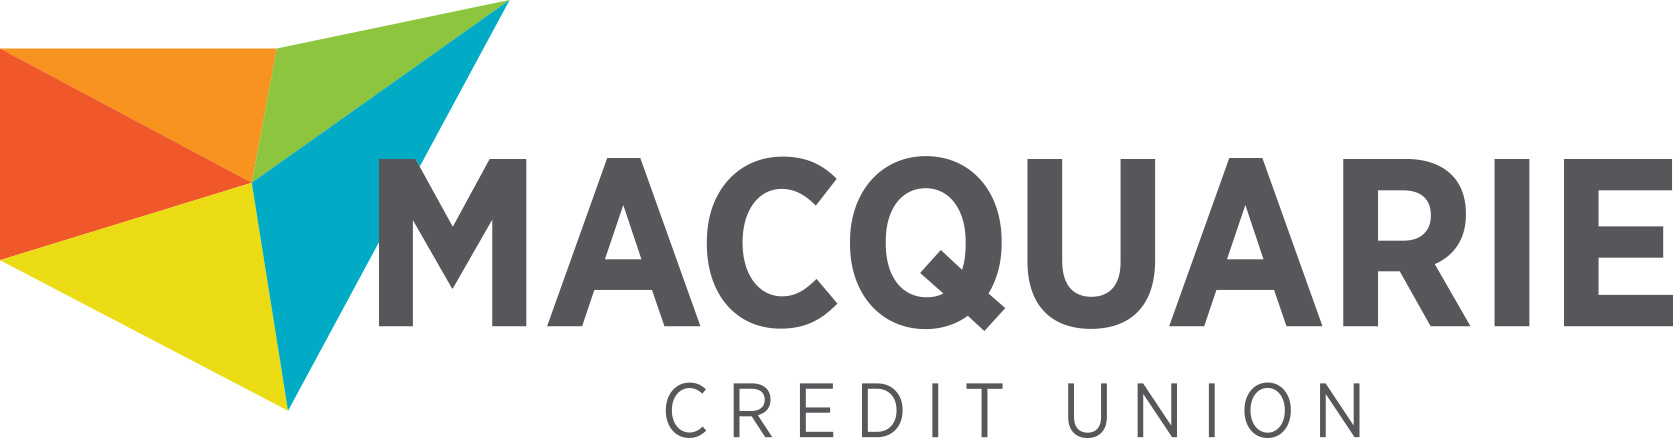 MACQUARIE CREDIT UNION